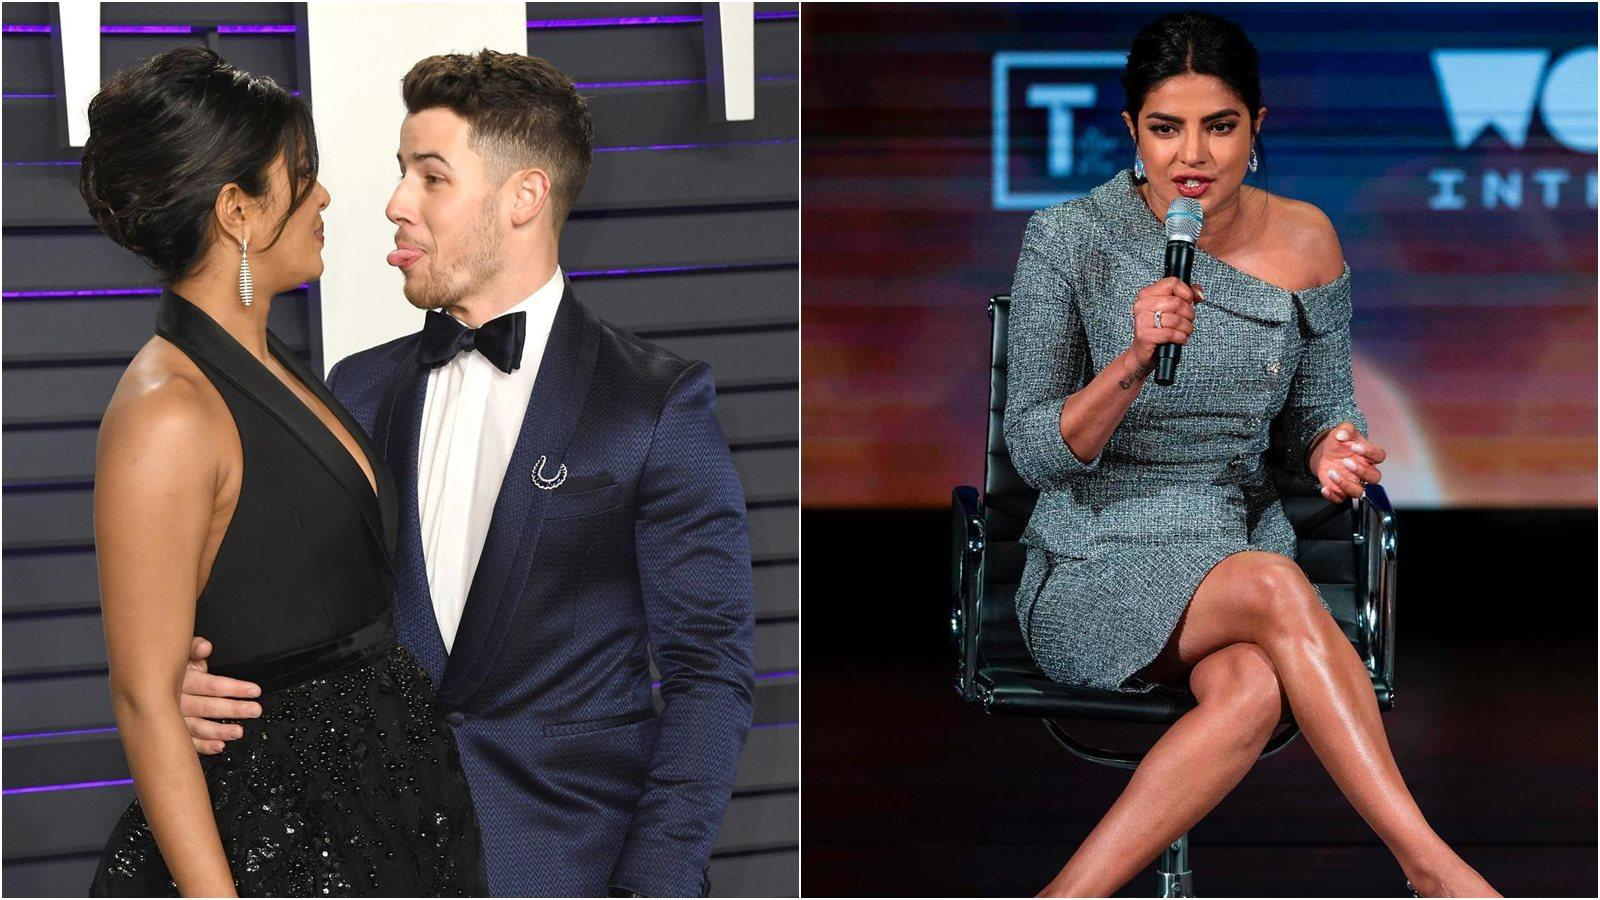 Priyanka Chopra on Nick Jonas: I judged a book by its cover